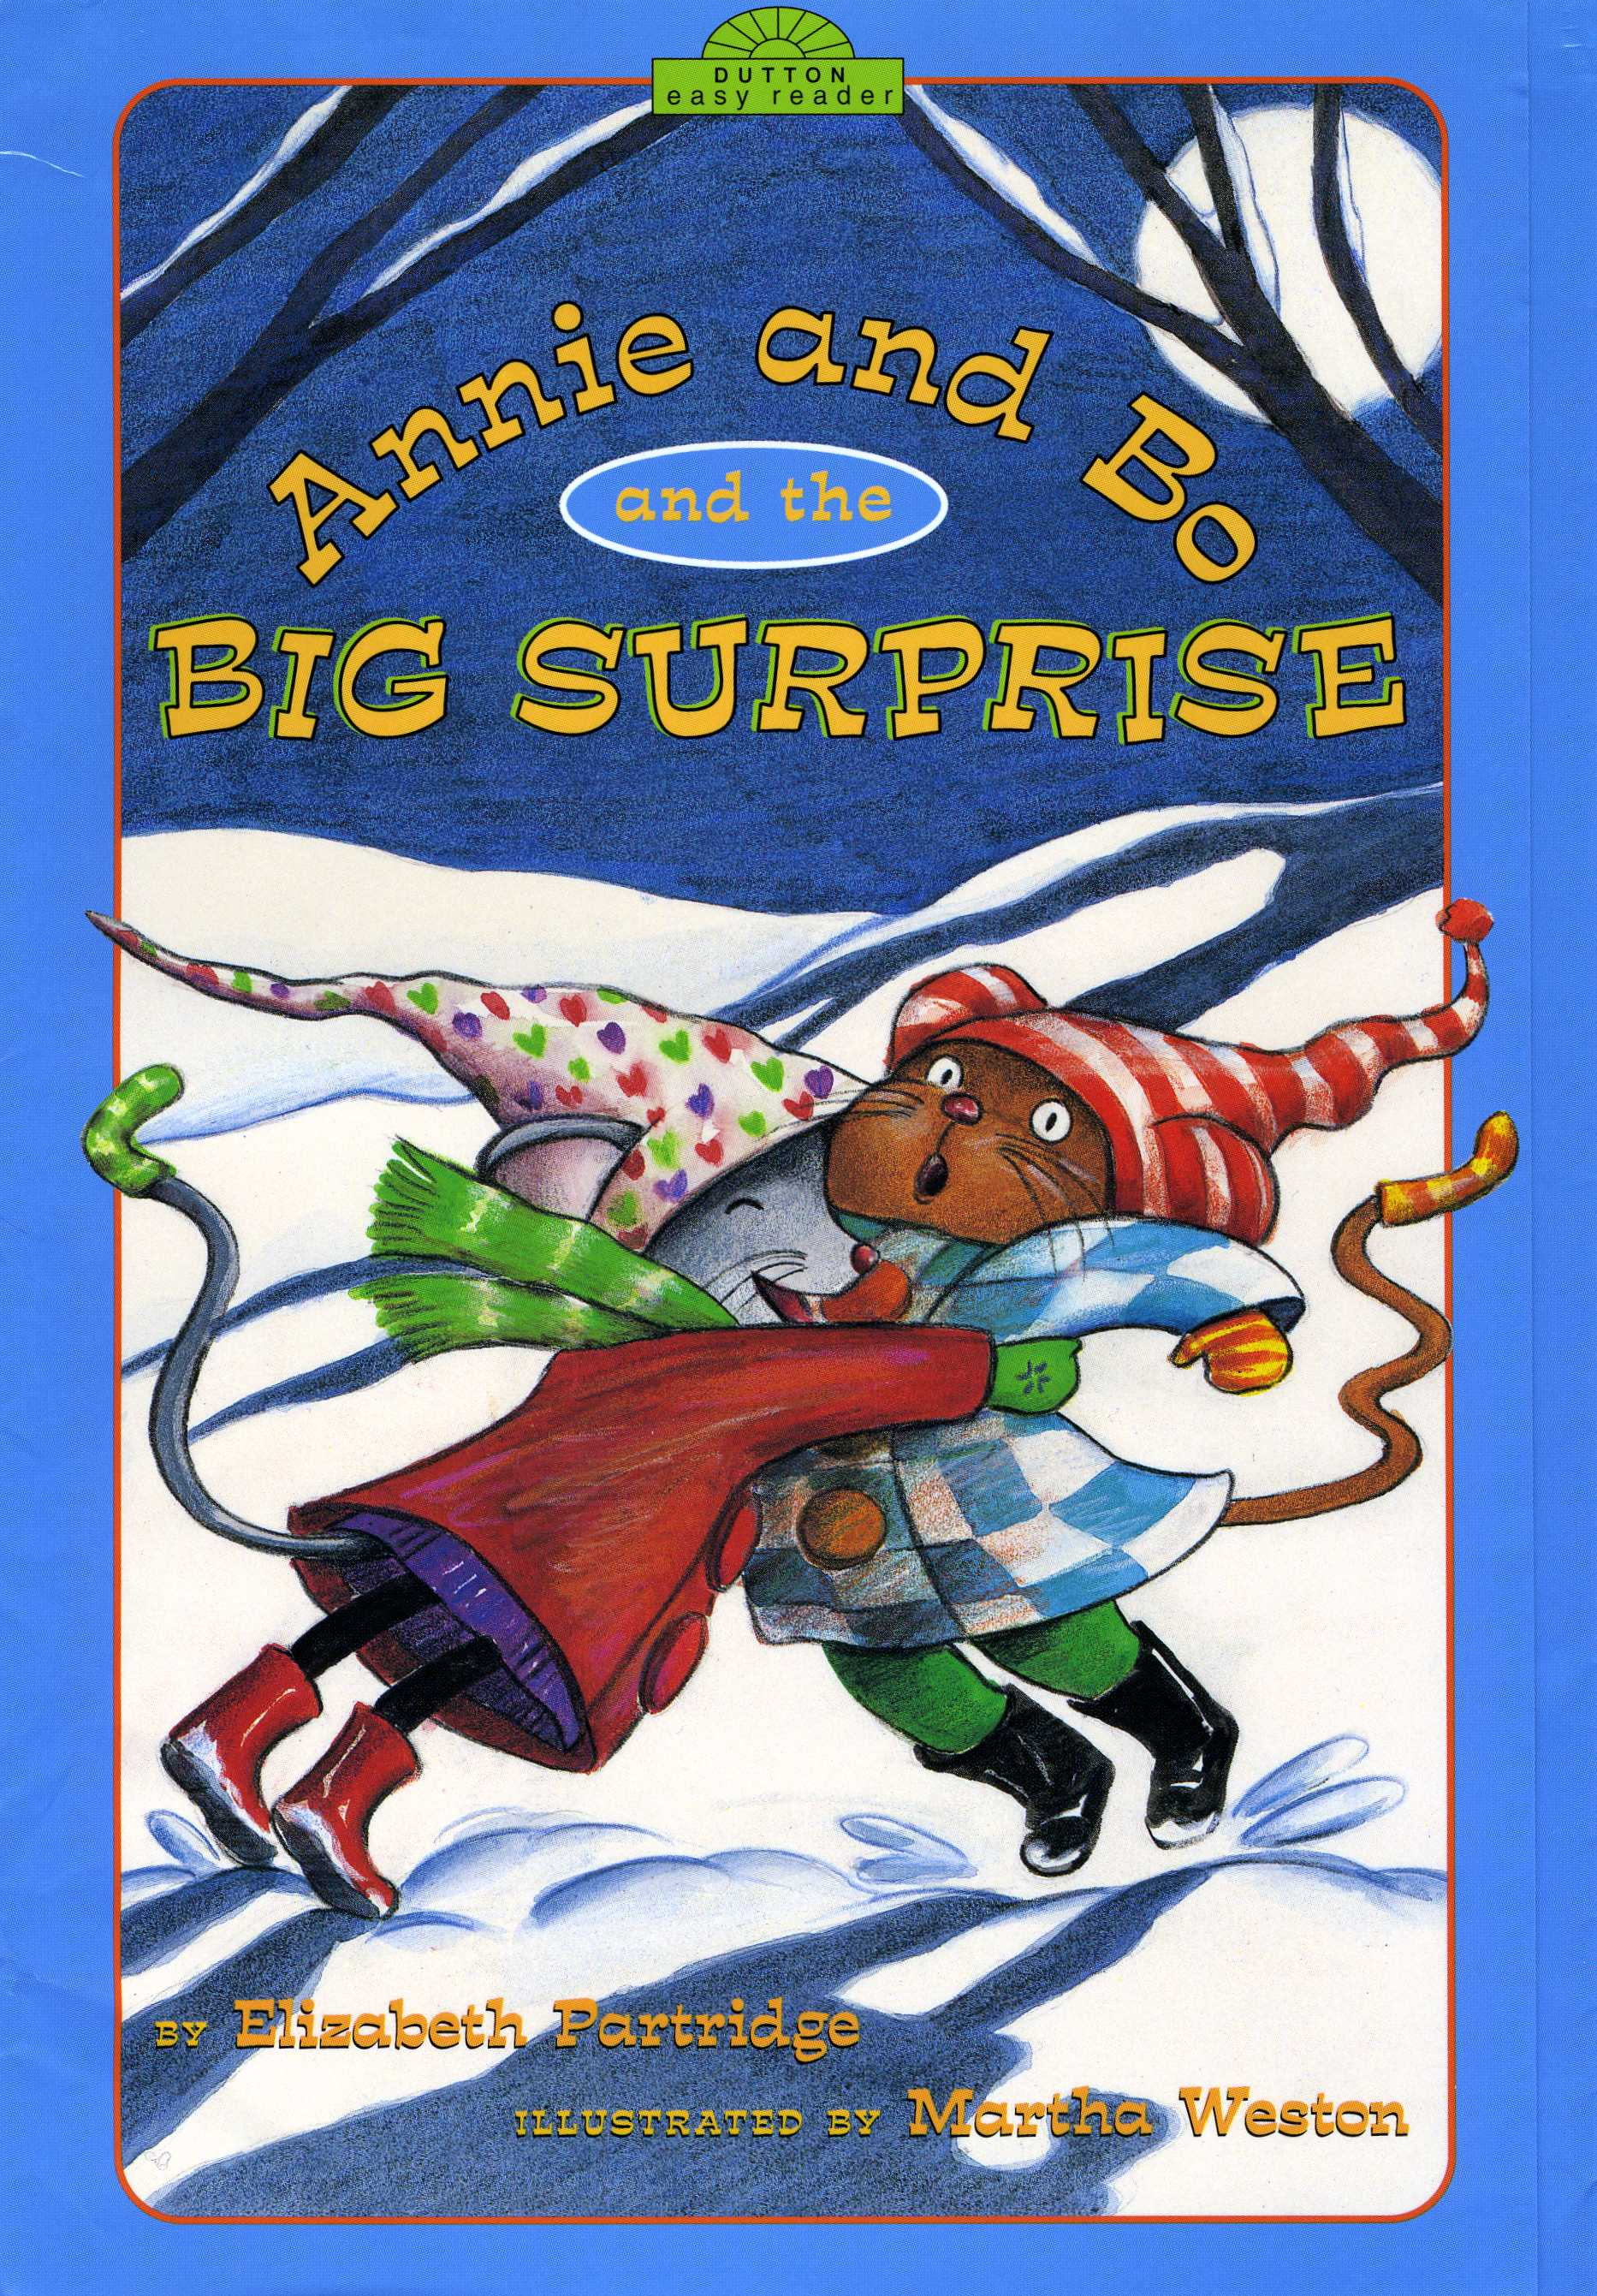 Annie and Bo and the Big Surprise - Bo wants to give his best friend, Annie, a big surprise, but what could it be? His new drawing is too scary, and he needs his marbles and his yellow tail sock for himself. The big round moon gives Bo an idea-he will bake Annie a full moon cake.When things don't turn out as planned, both Annie and Bo enjoy a big surprise-not to mention the warmth and fun that friendship brings. Humor and suspense are perfectly captured and cadenced here for beginning readers.Illustrated by Martha WestonDutton Children's Books 2002 (Out of Print)